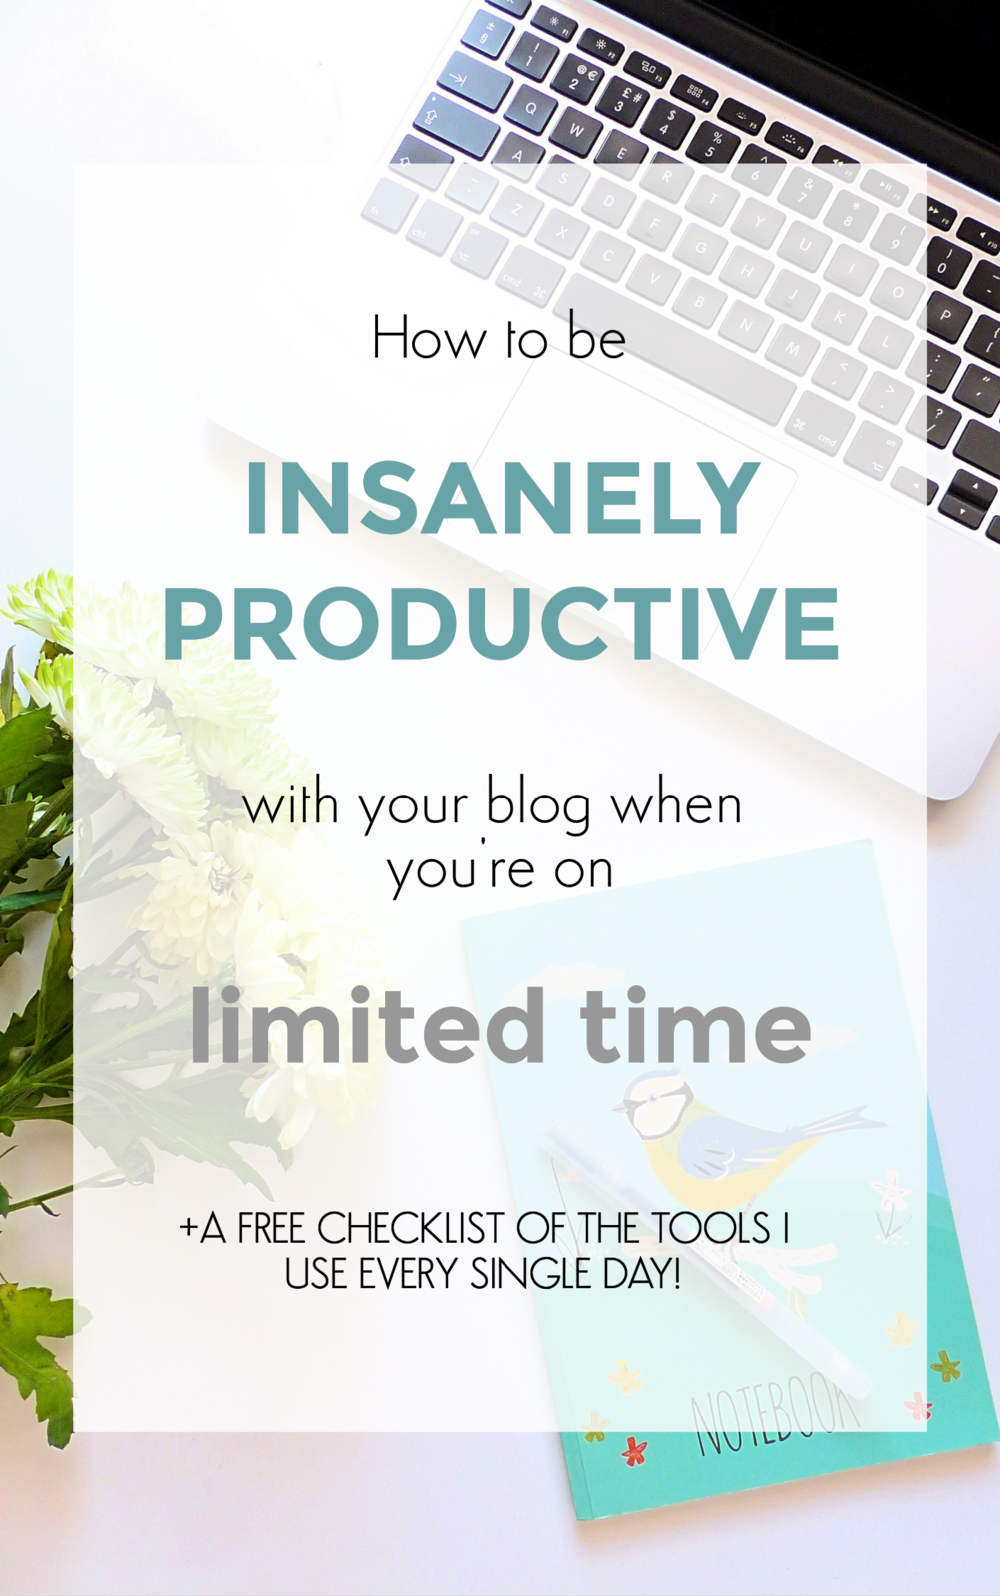 how to be insanely productive with your blog when you're on limited time